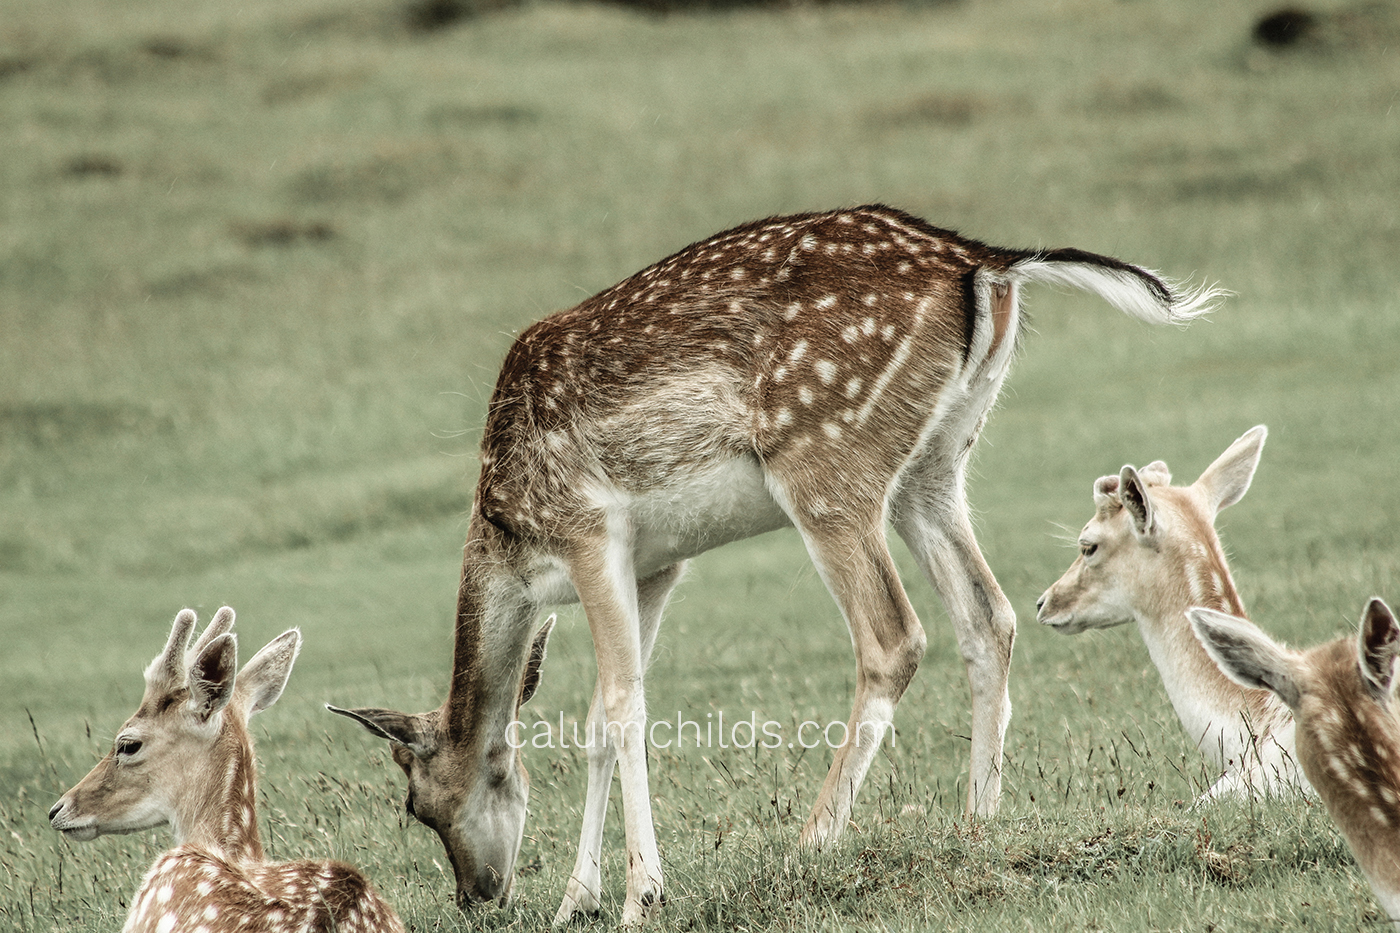 A doe eats on some grass, surrounded by other does sitting down and looking into the distance.